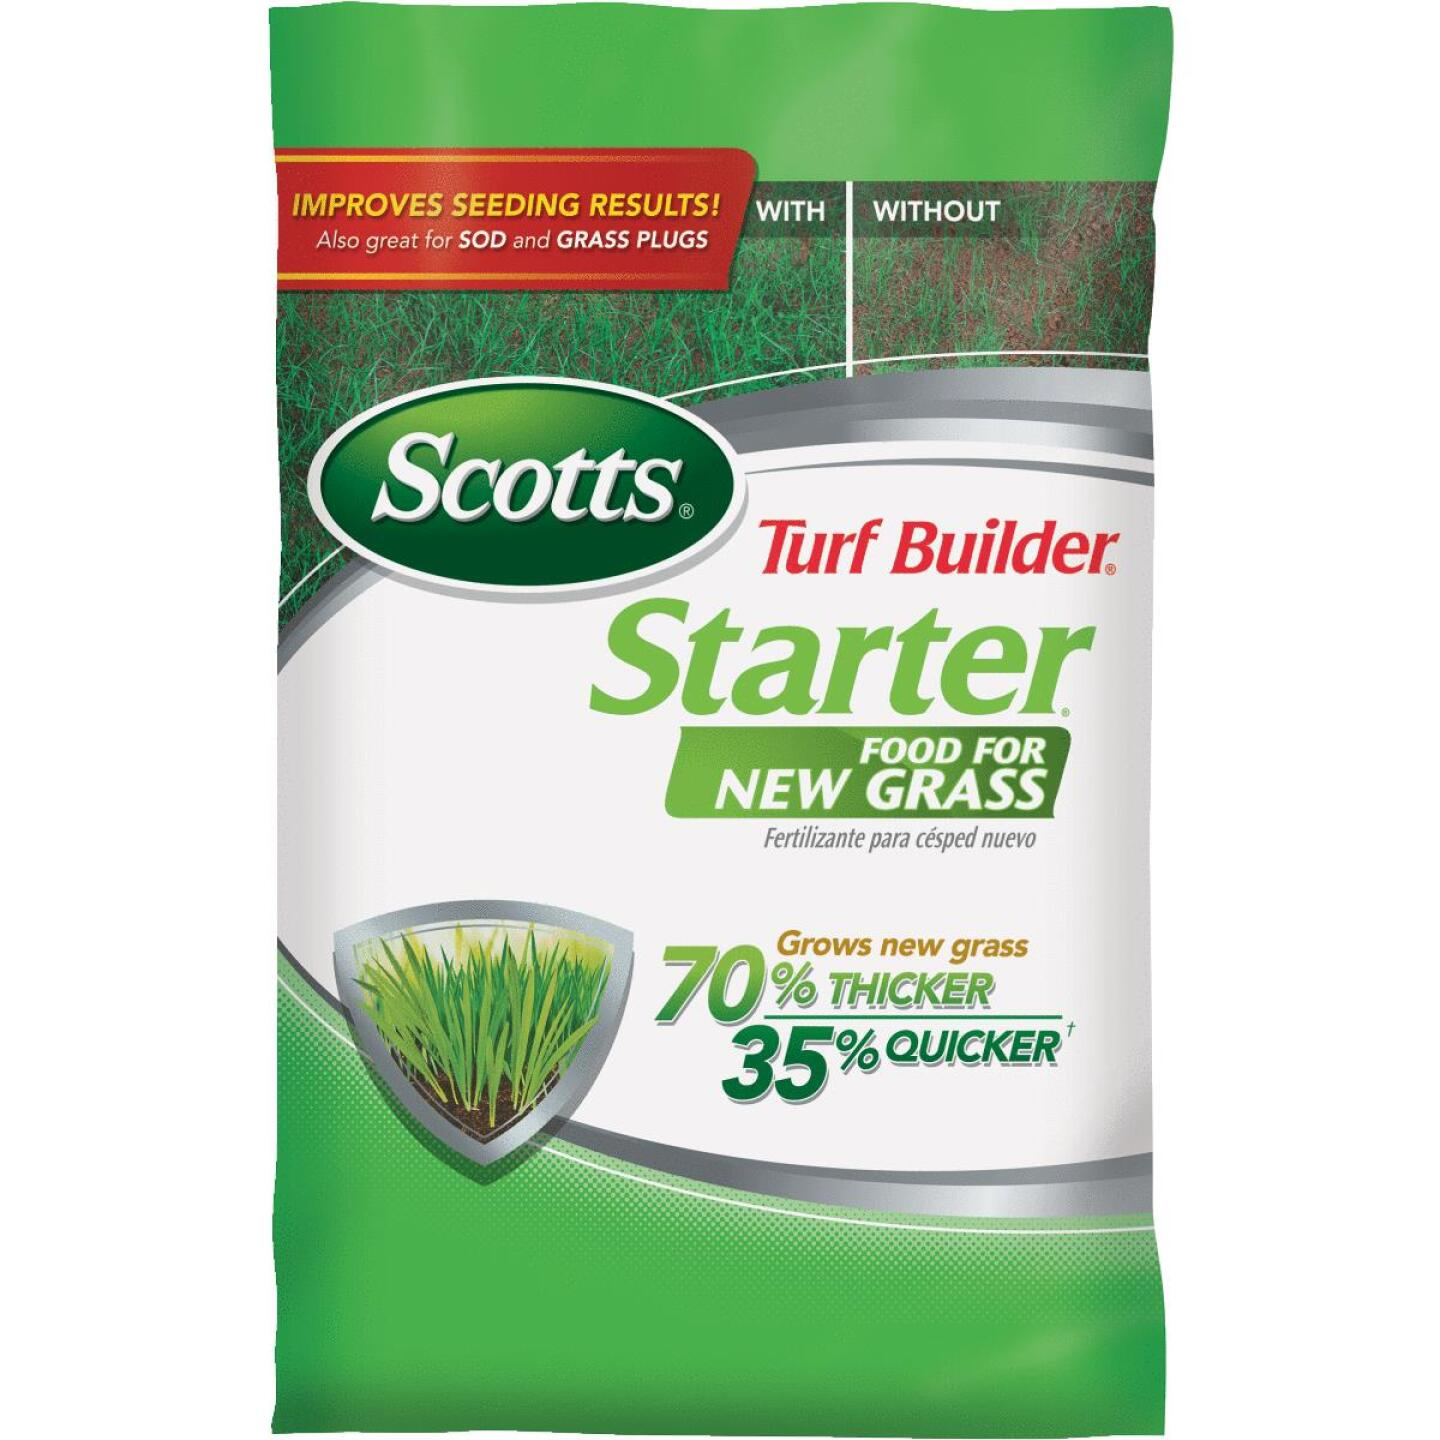 Scotts Turf Builder 3 Lb. 1000 Sq. Ft. 24-25-4 Starter Fertilizer For New Lawns Image 1